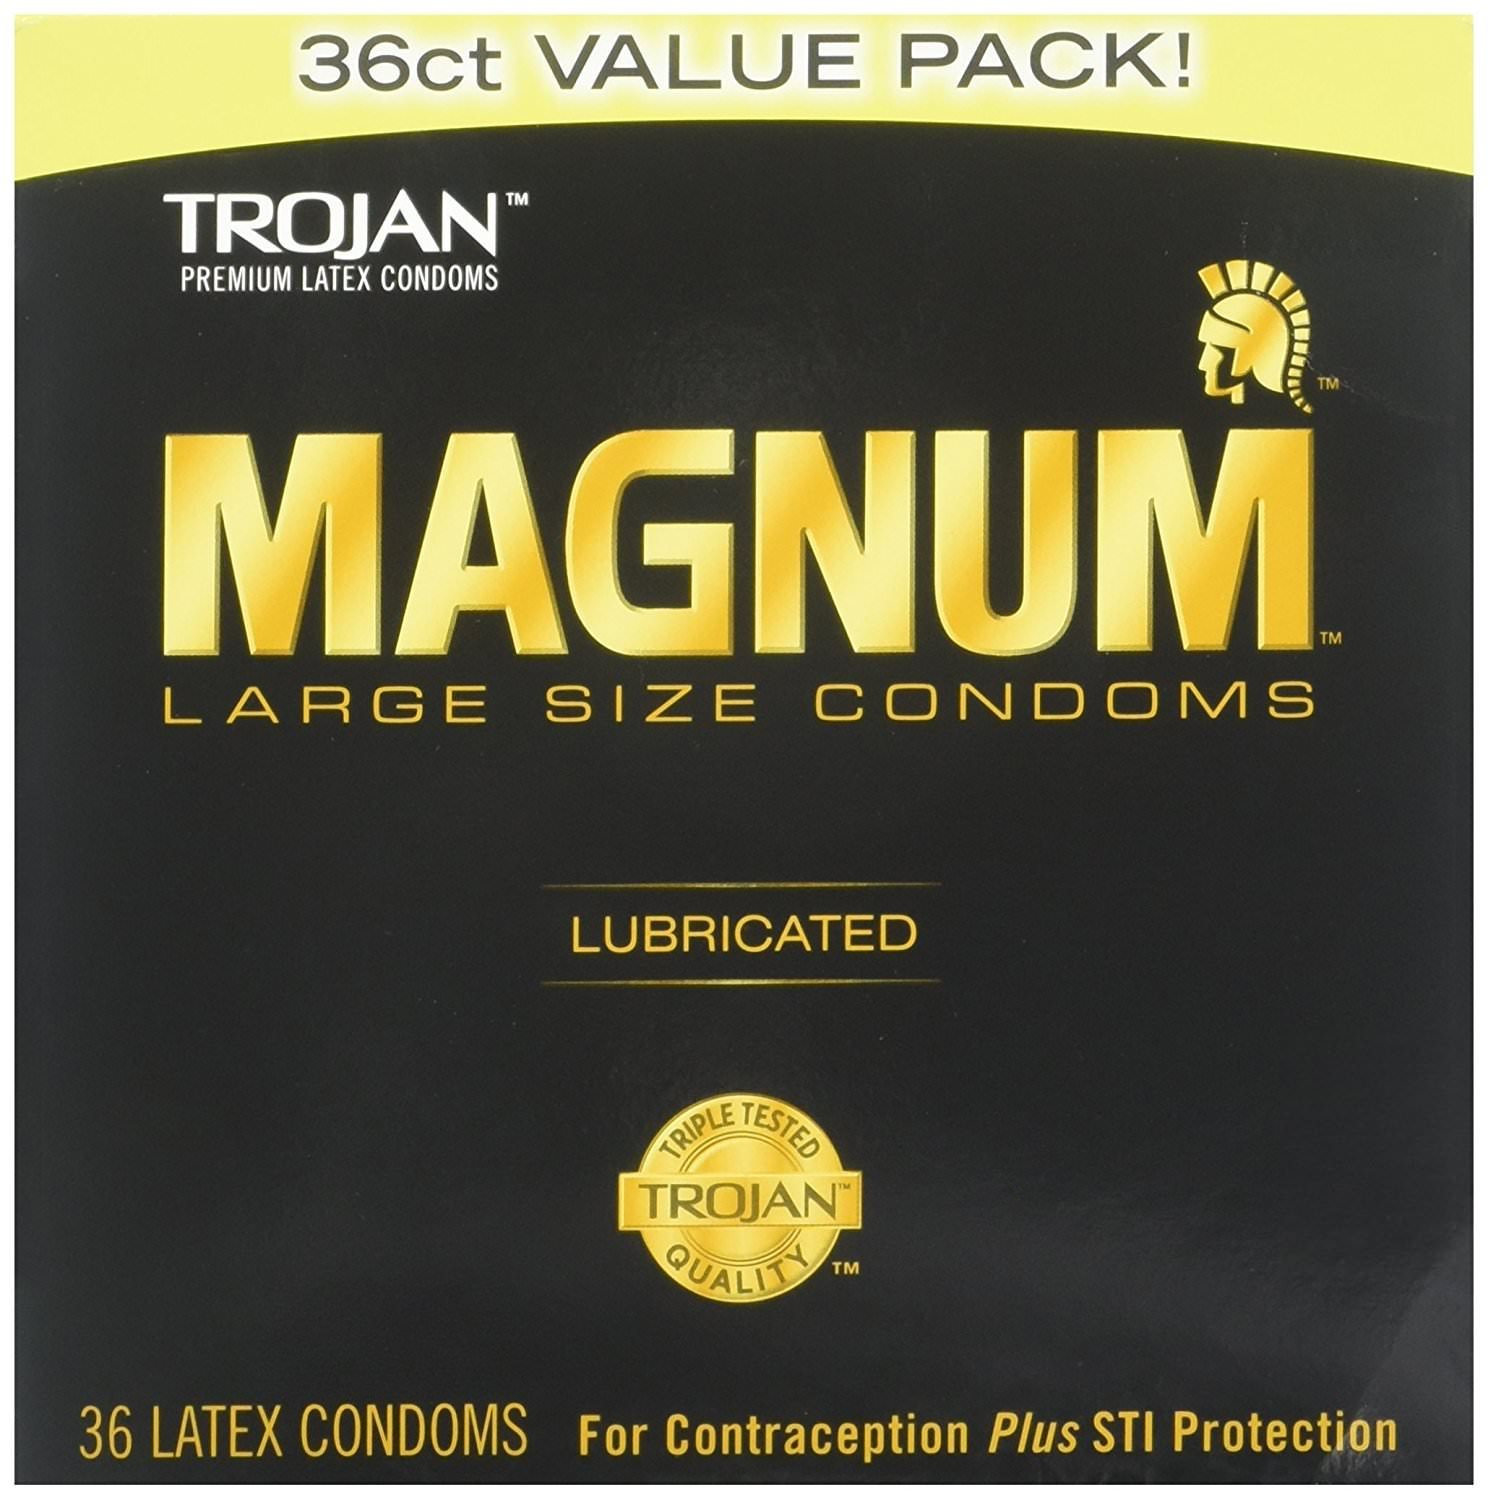 Magnum Lubricated Latex Large Size Condoms, 2 Boxes (36 Condoms) by TROJAN